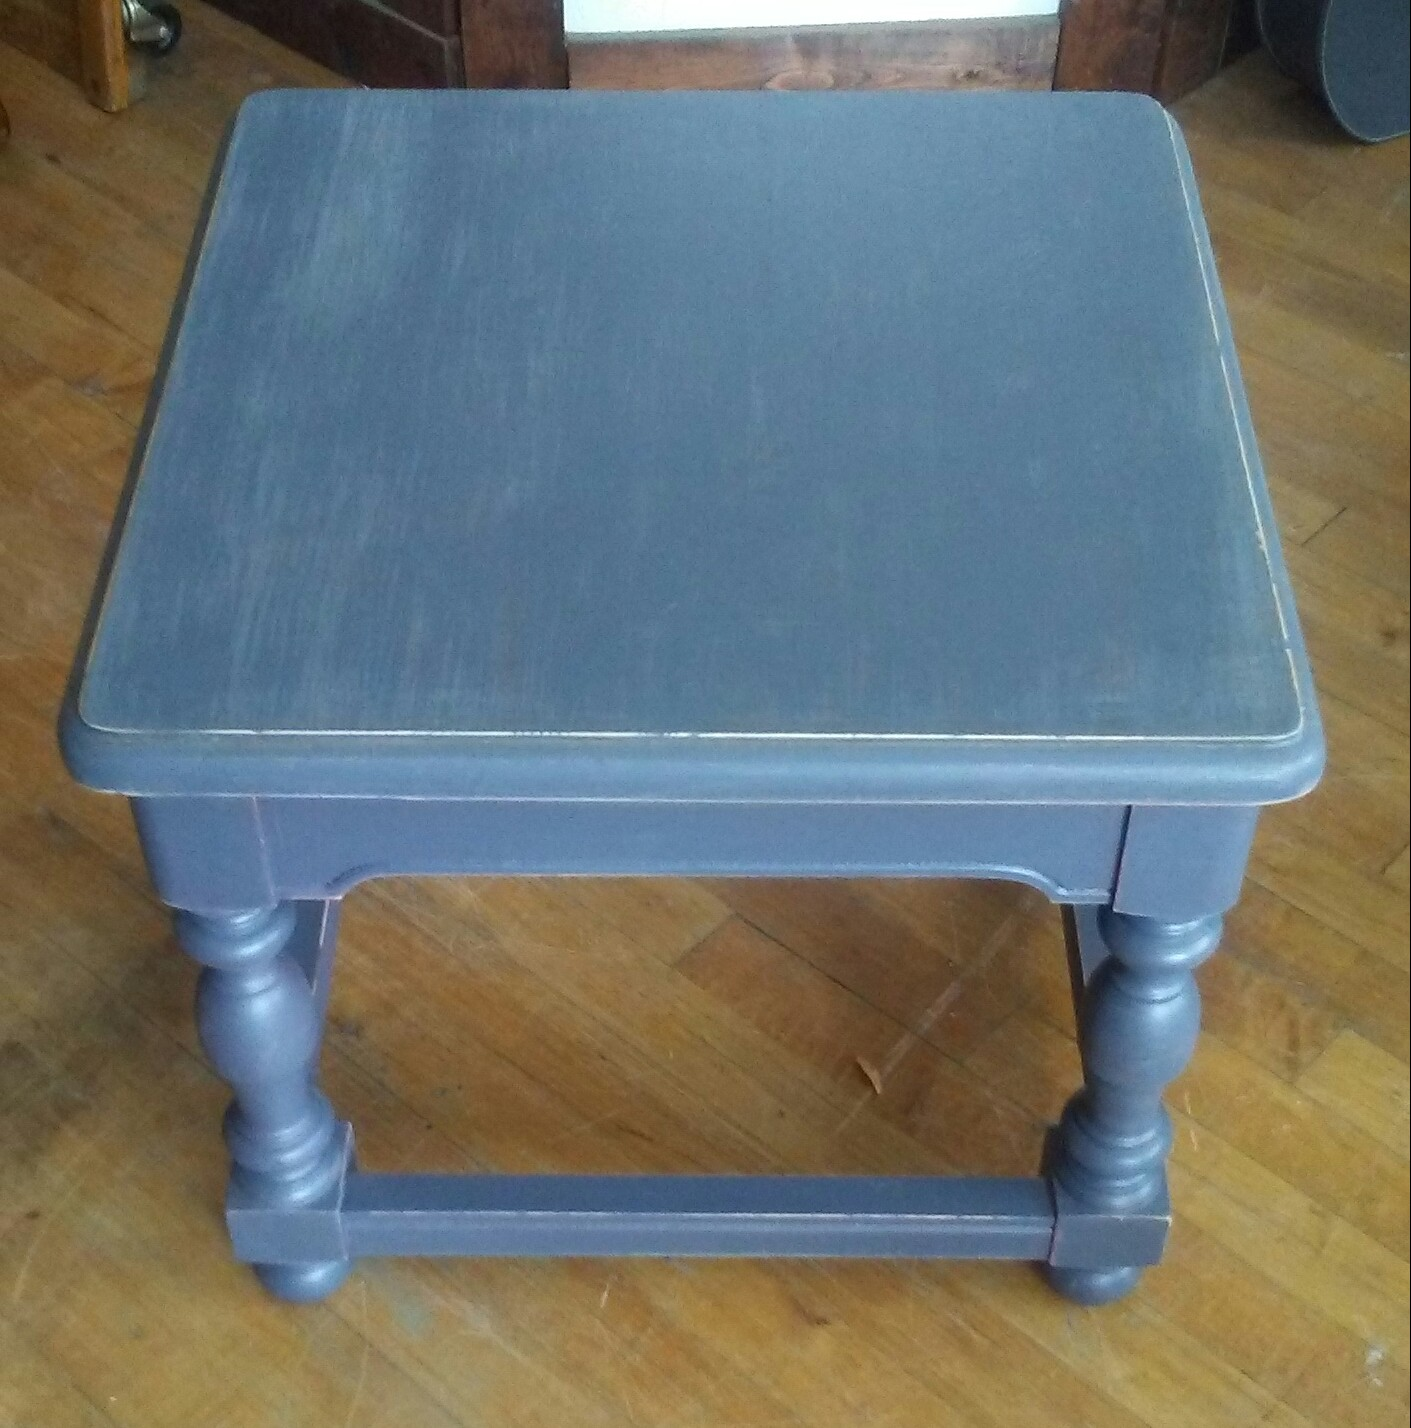 dark gray painted end table shabby chic accent for ori charcoal teal blue refurbished vintage and slightly distressed this looks great country farmhouse primitive traditional